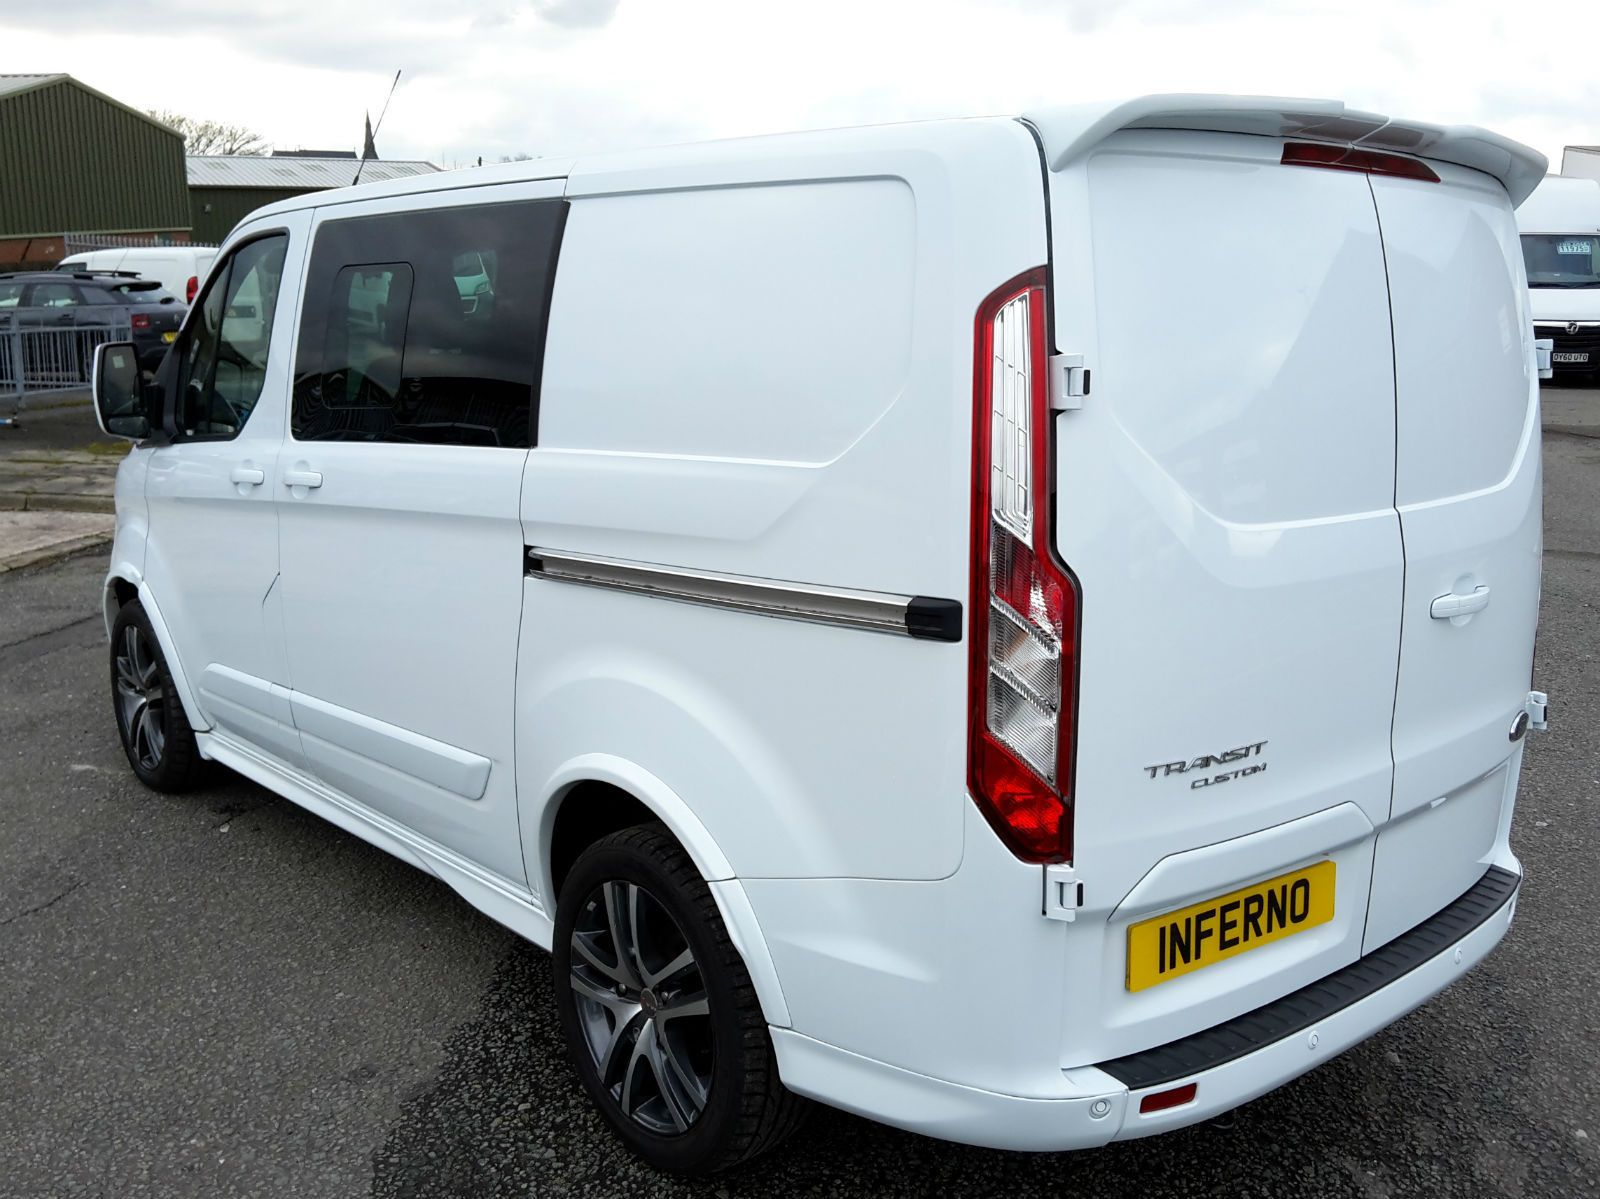 ford transit custom limited 2 2tdci 130ps double cab in van ford transit ford and custom vans. Black Bedroom Furniture Sets. Home Design Ideas